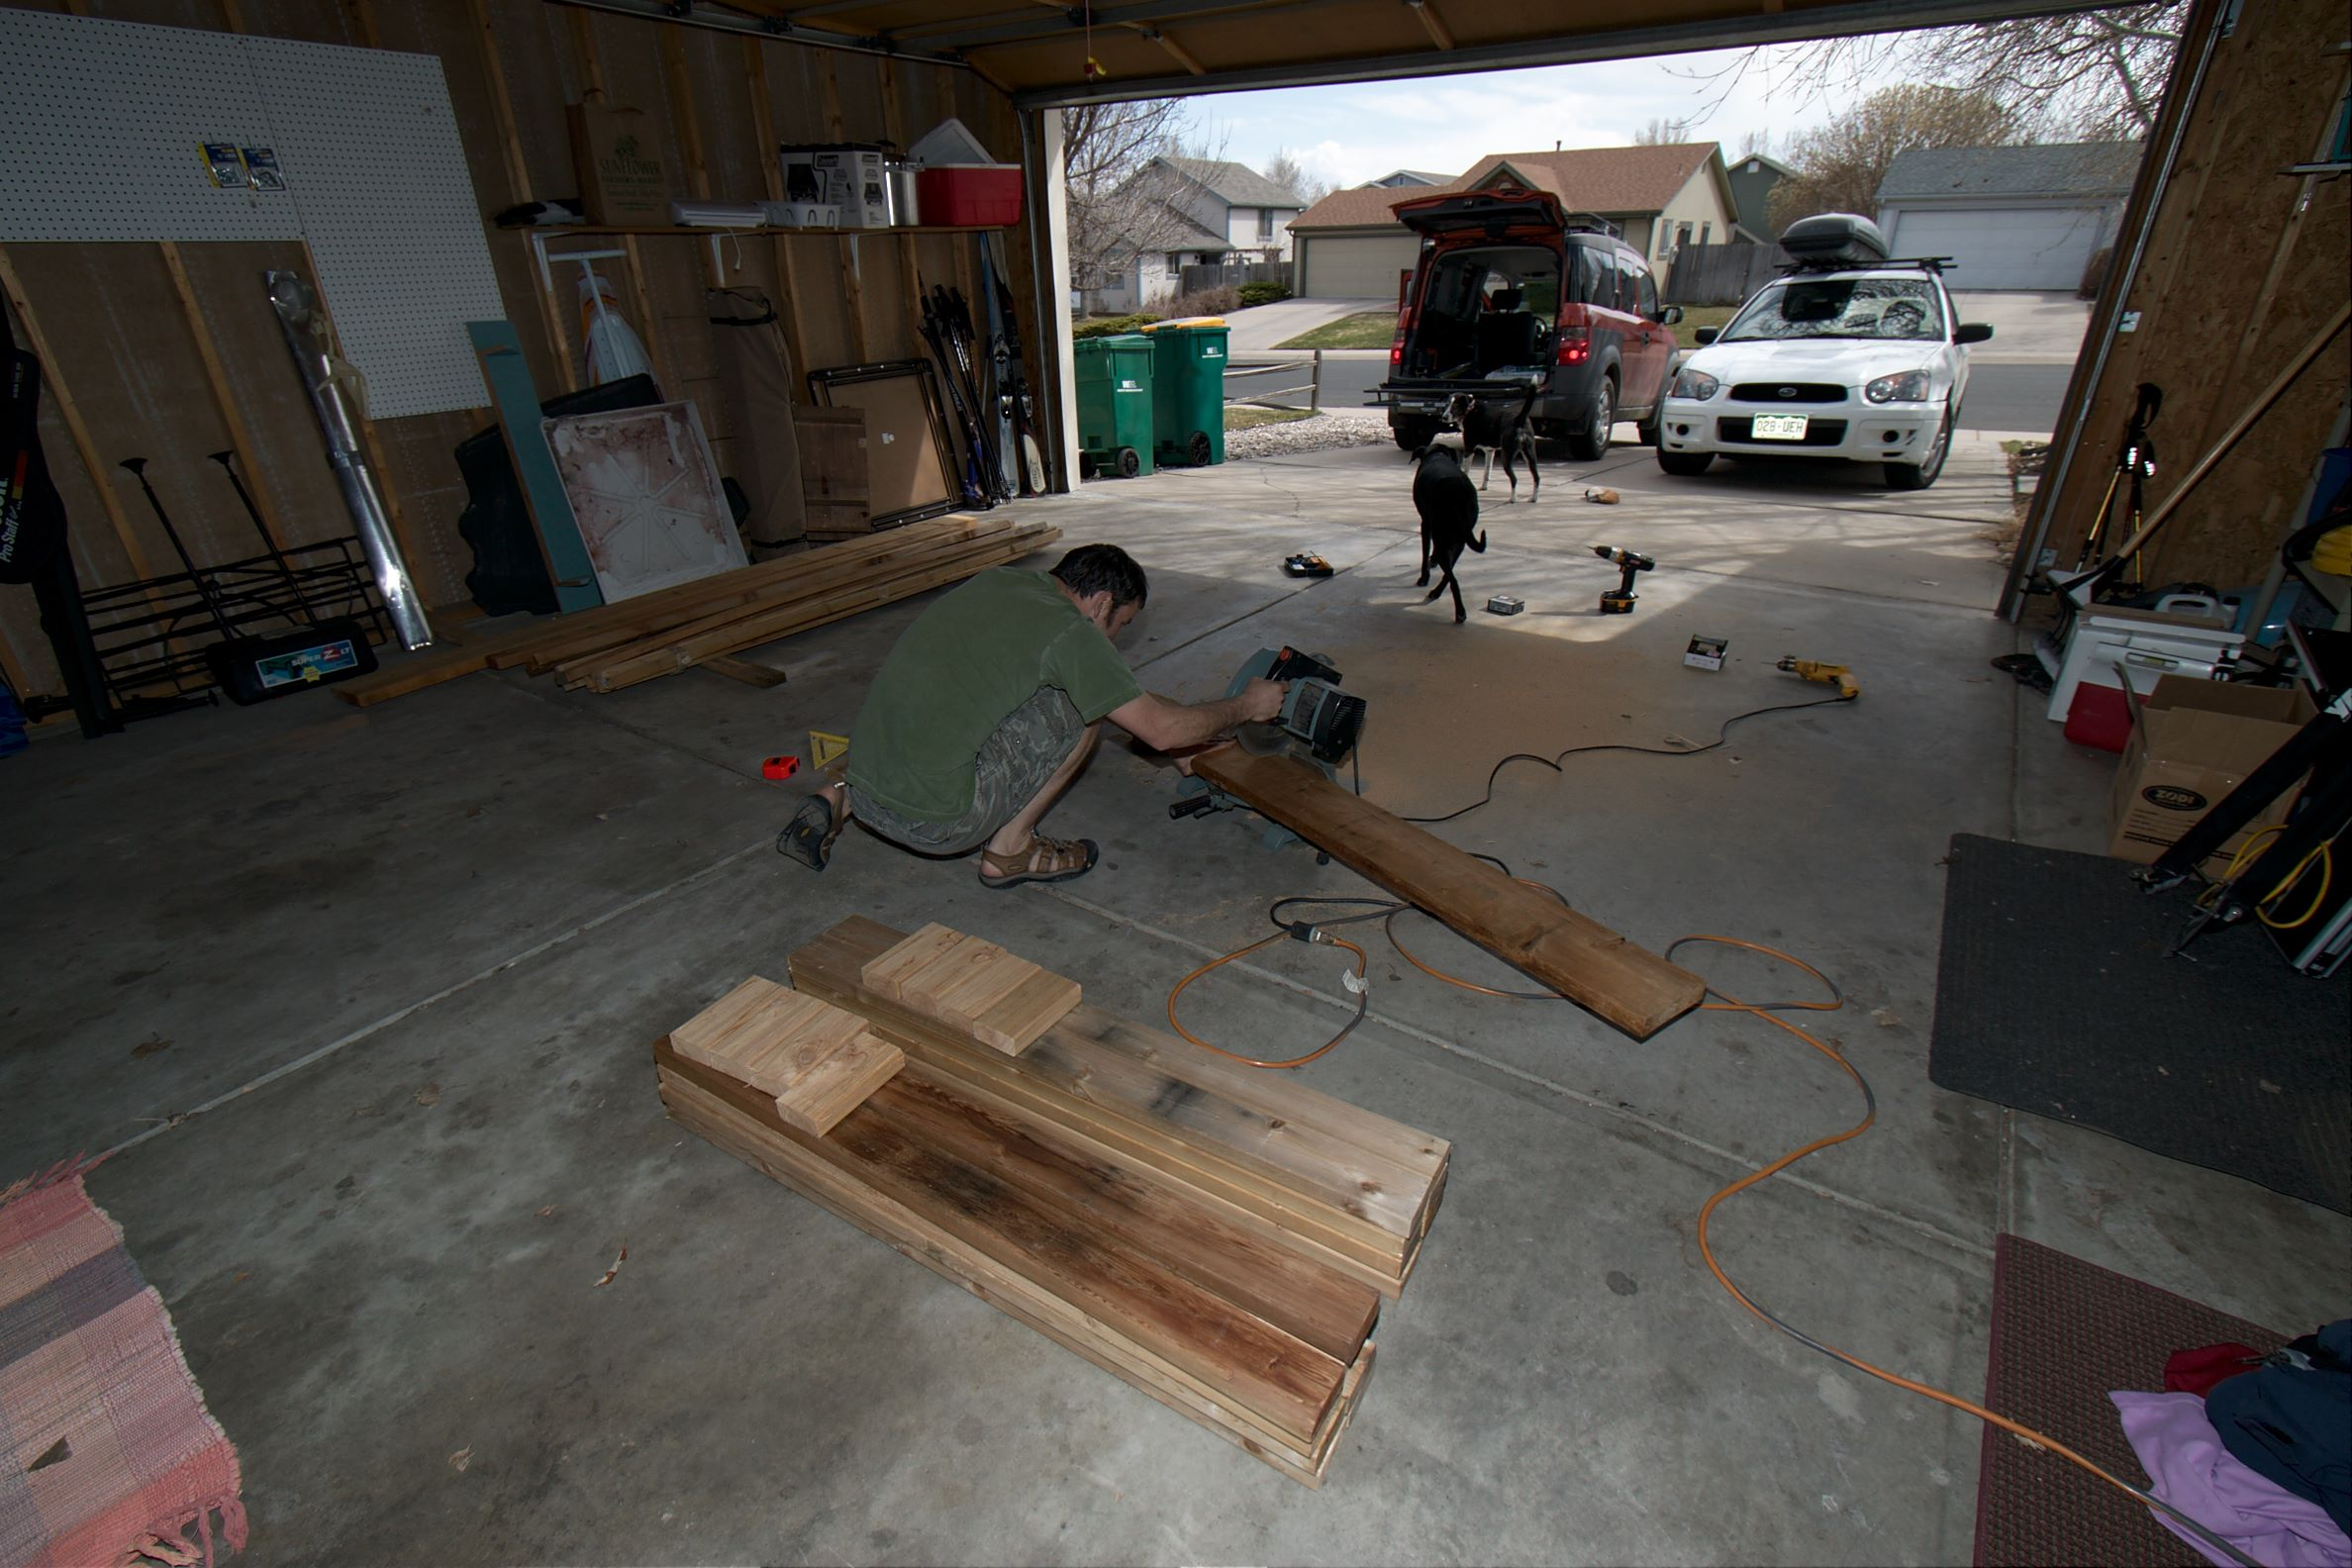 Building square foot garden boxes in the garage